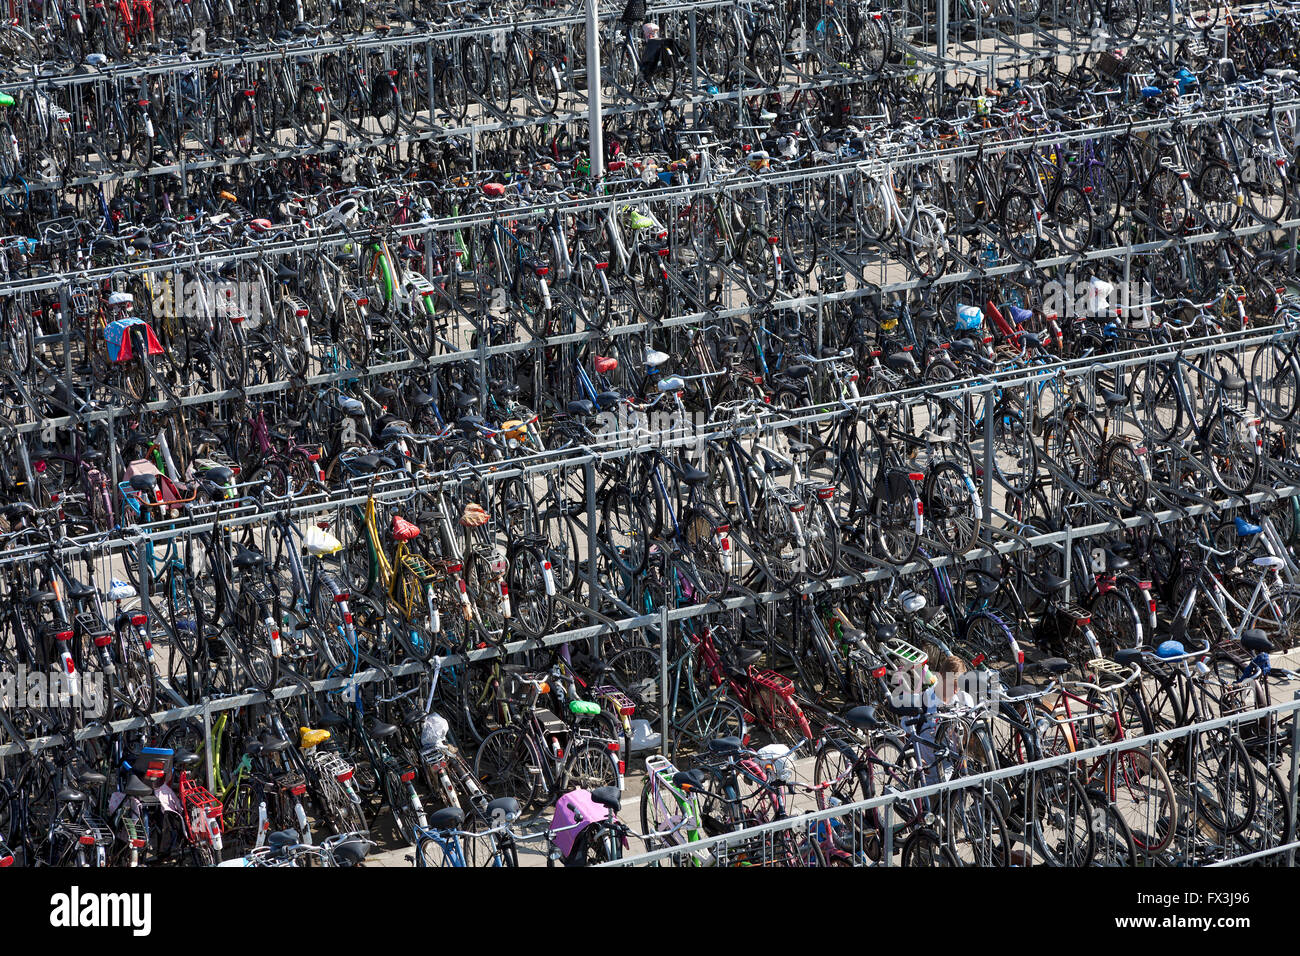 Bicycle storage at the train station in Delft, Holland - Stock Image